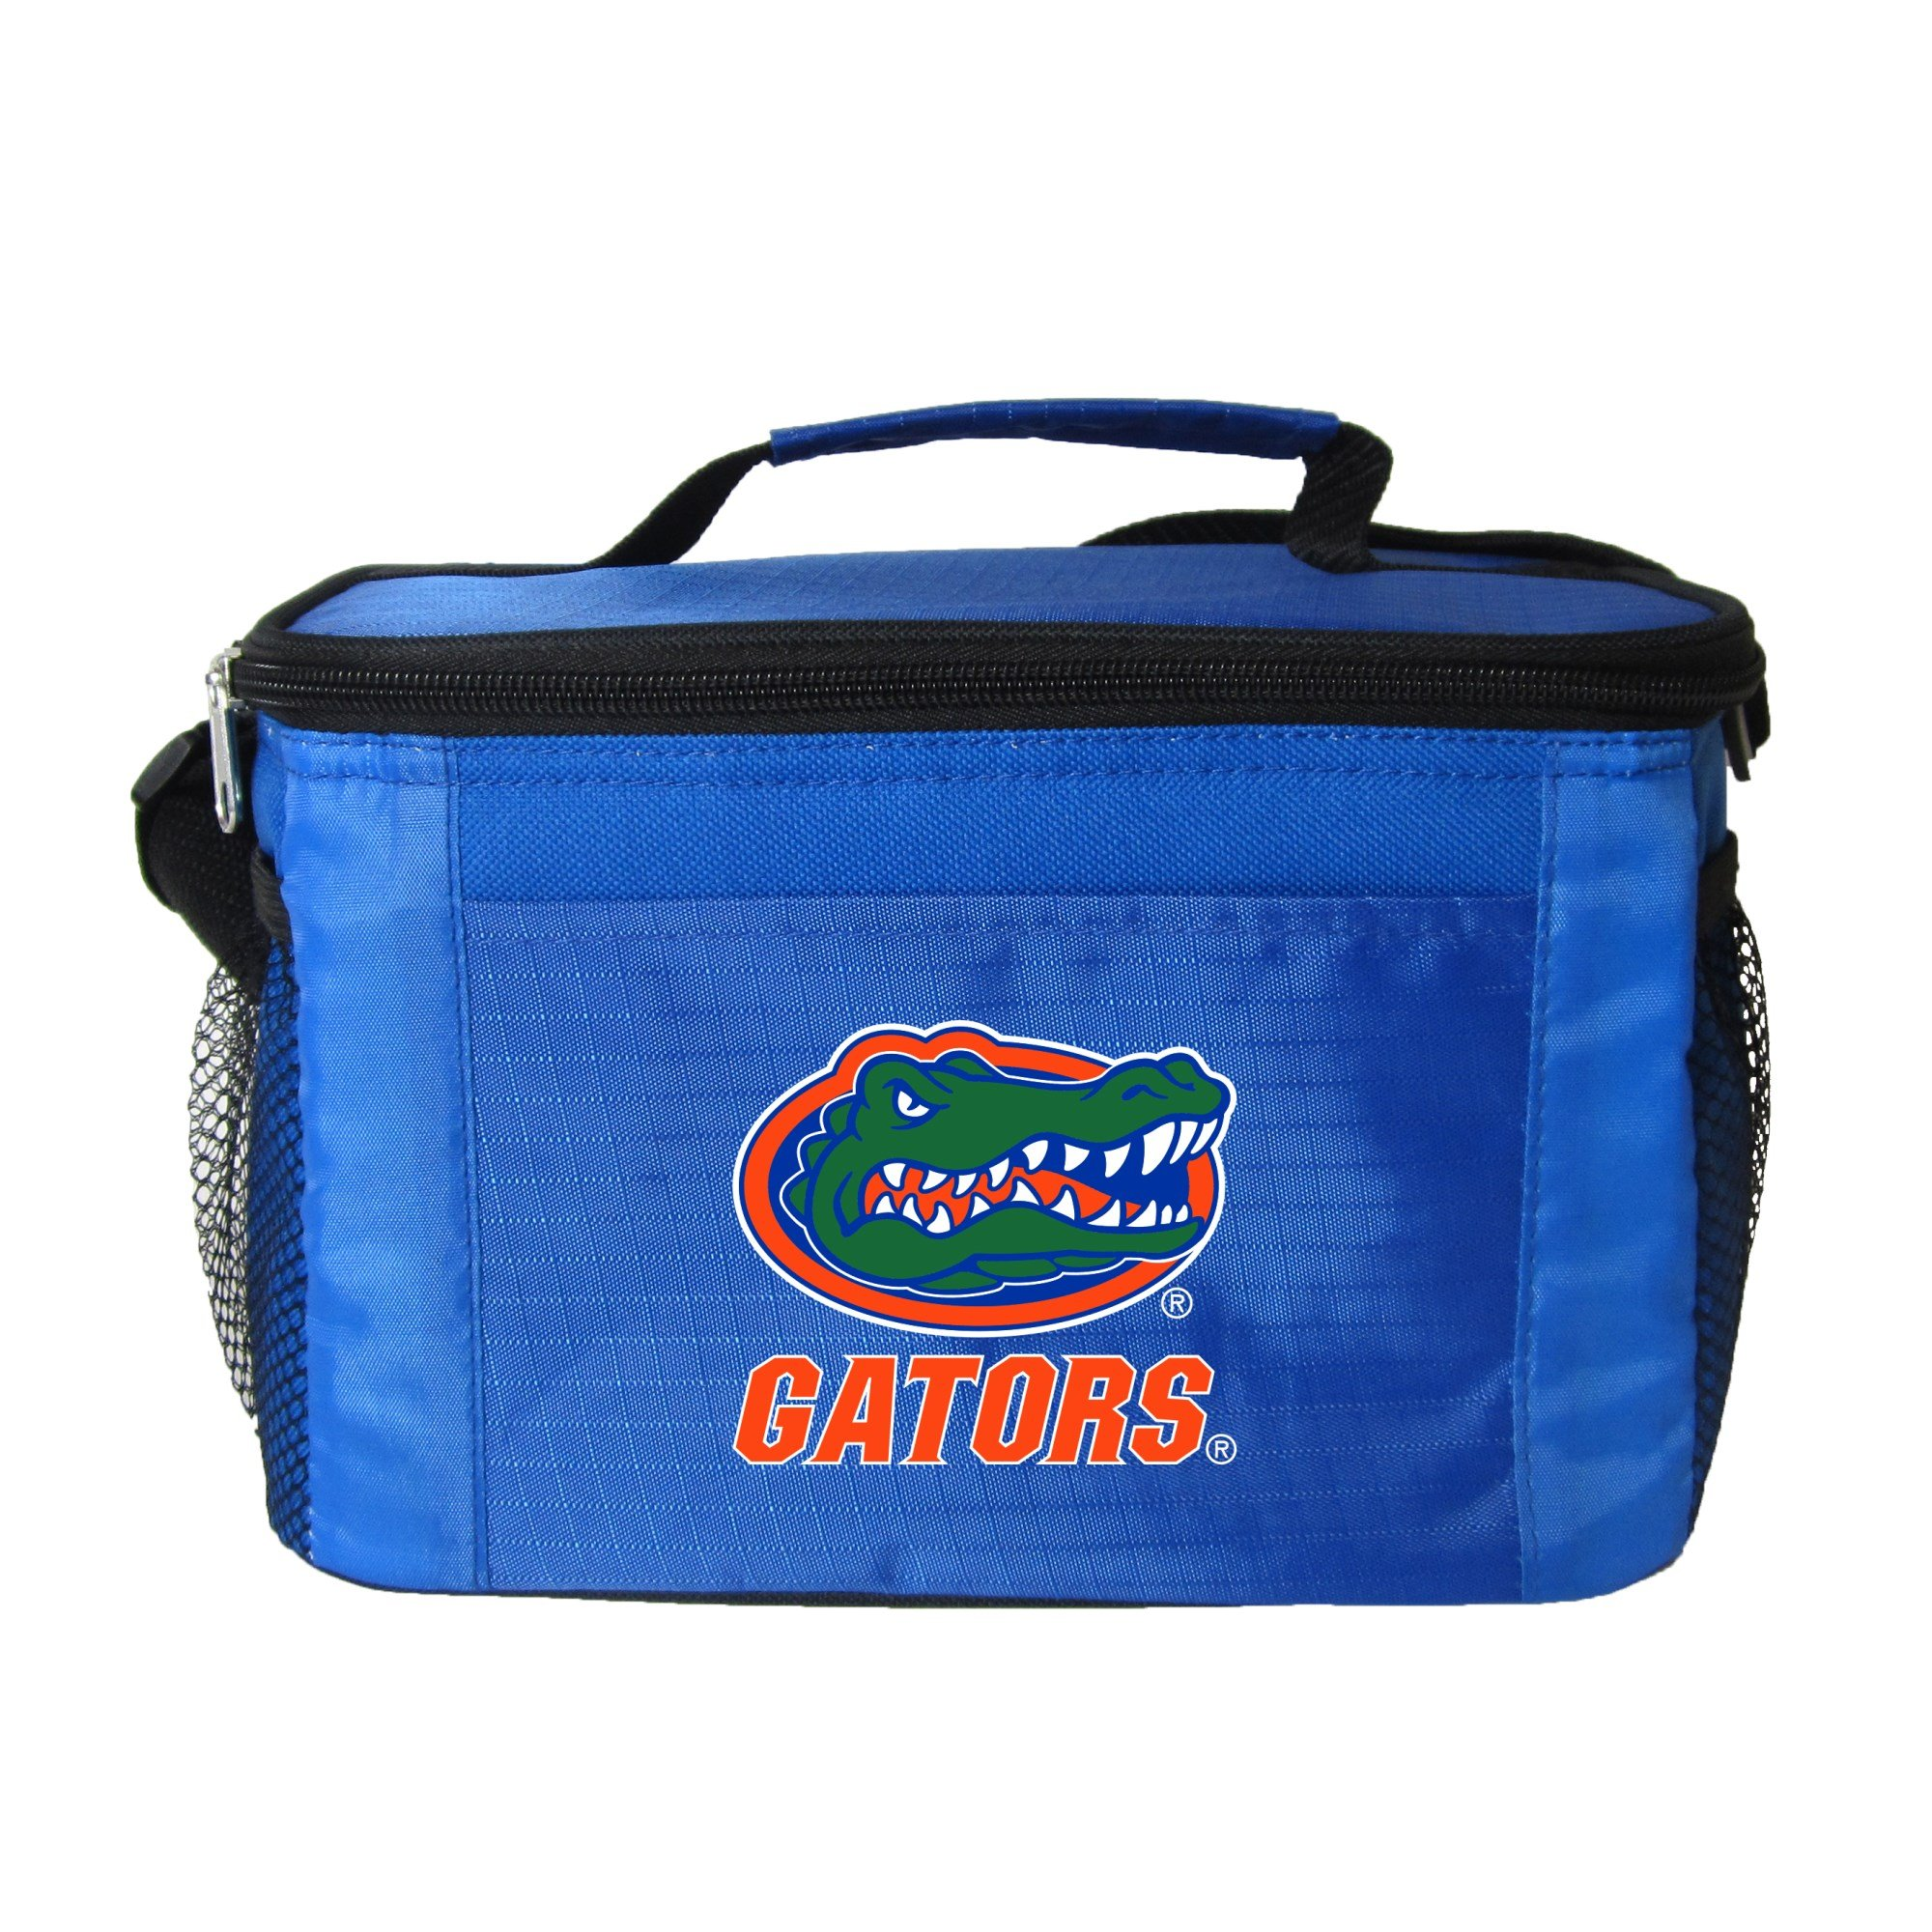 NCAA Florida Gators Insulated Lunch Cooler Bag with Zipper Closure, Royal